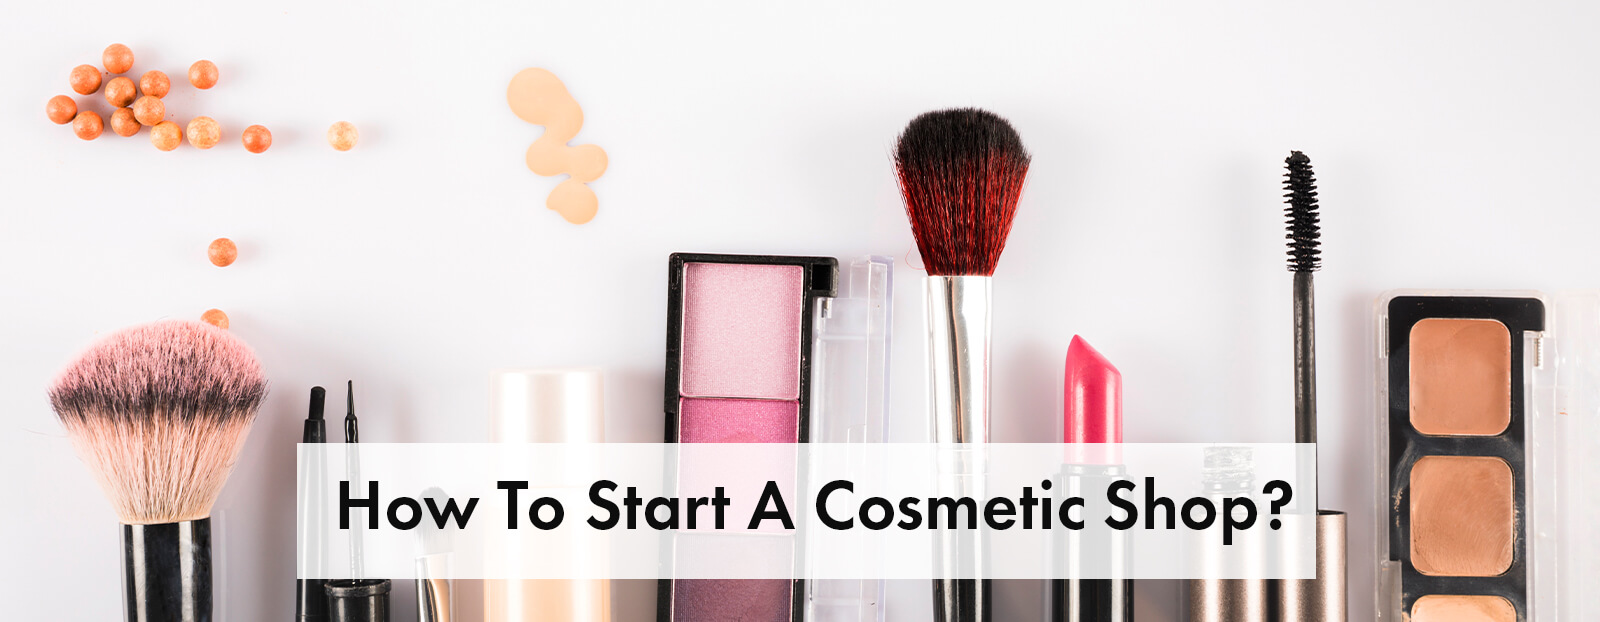 How To Start A Cosmetics Shop?